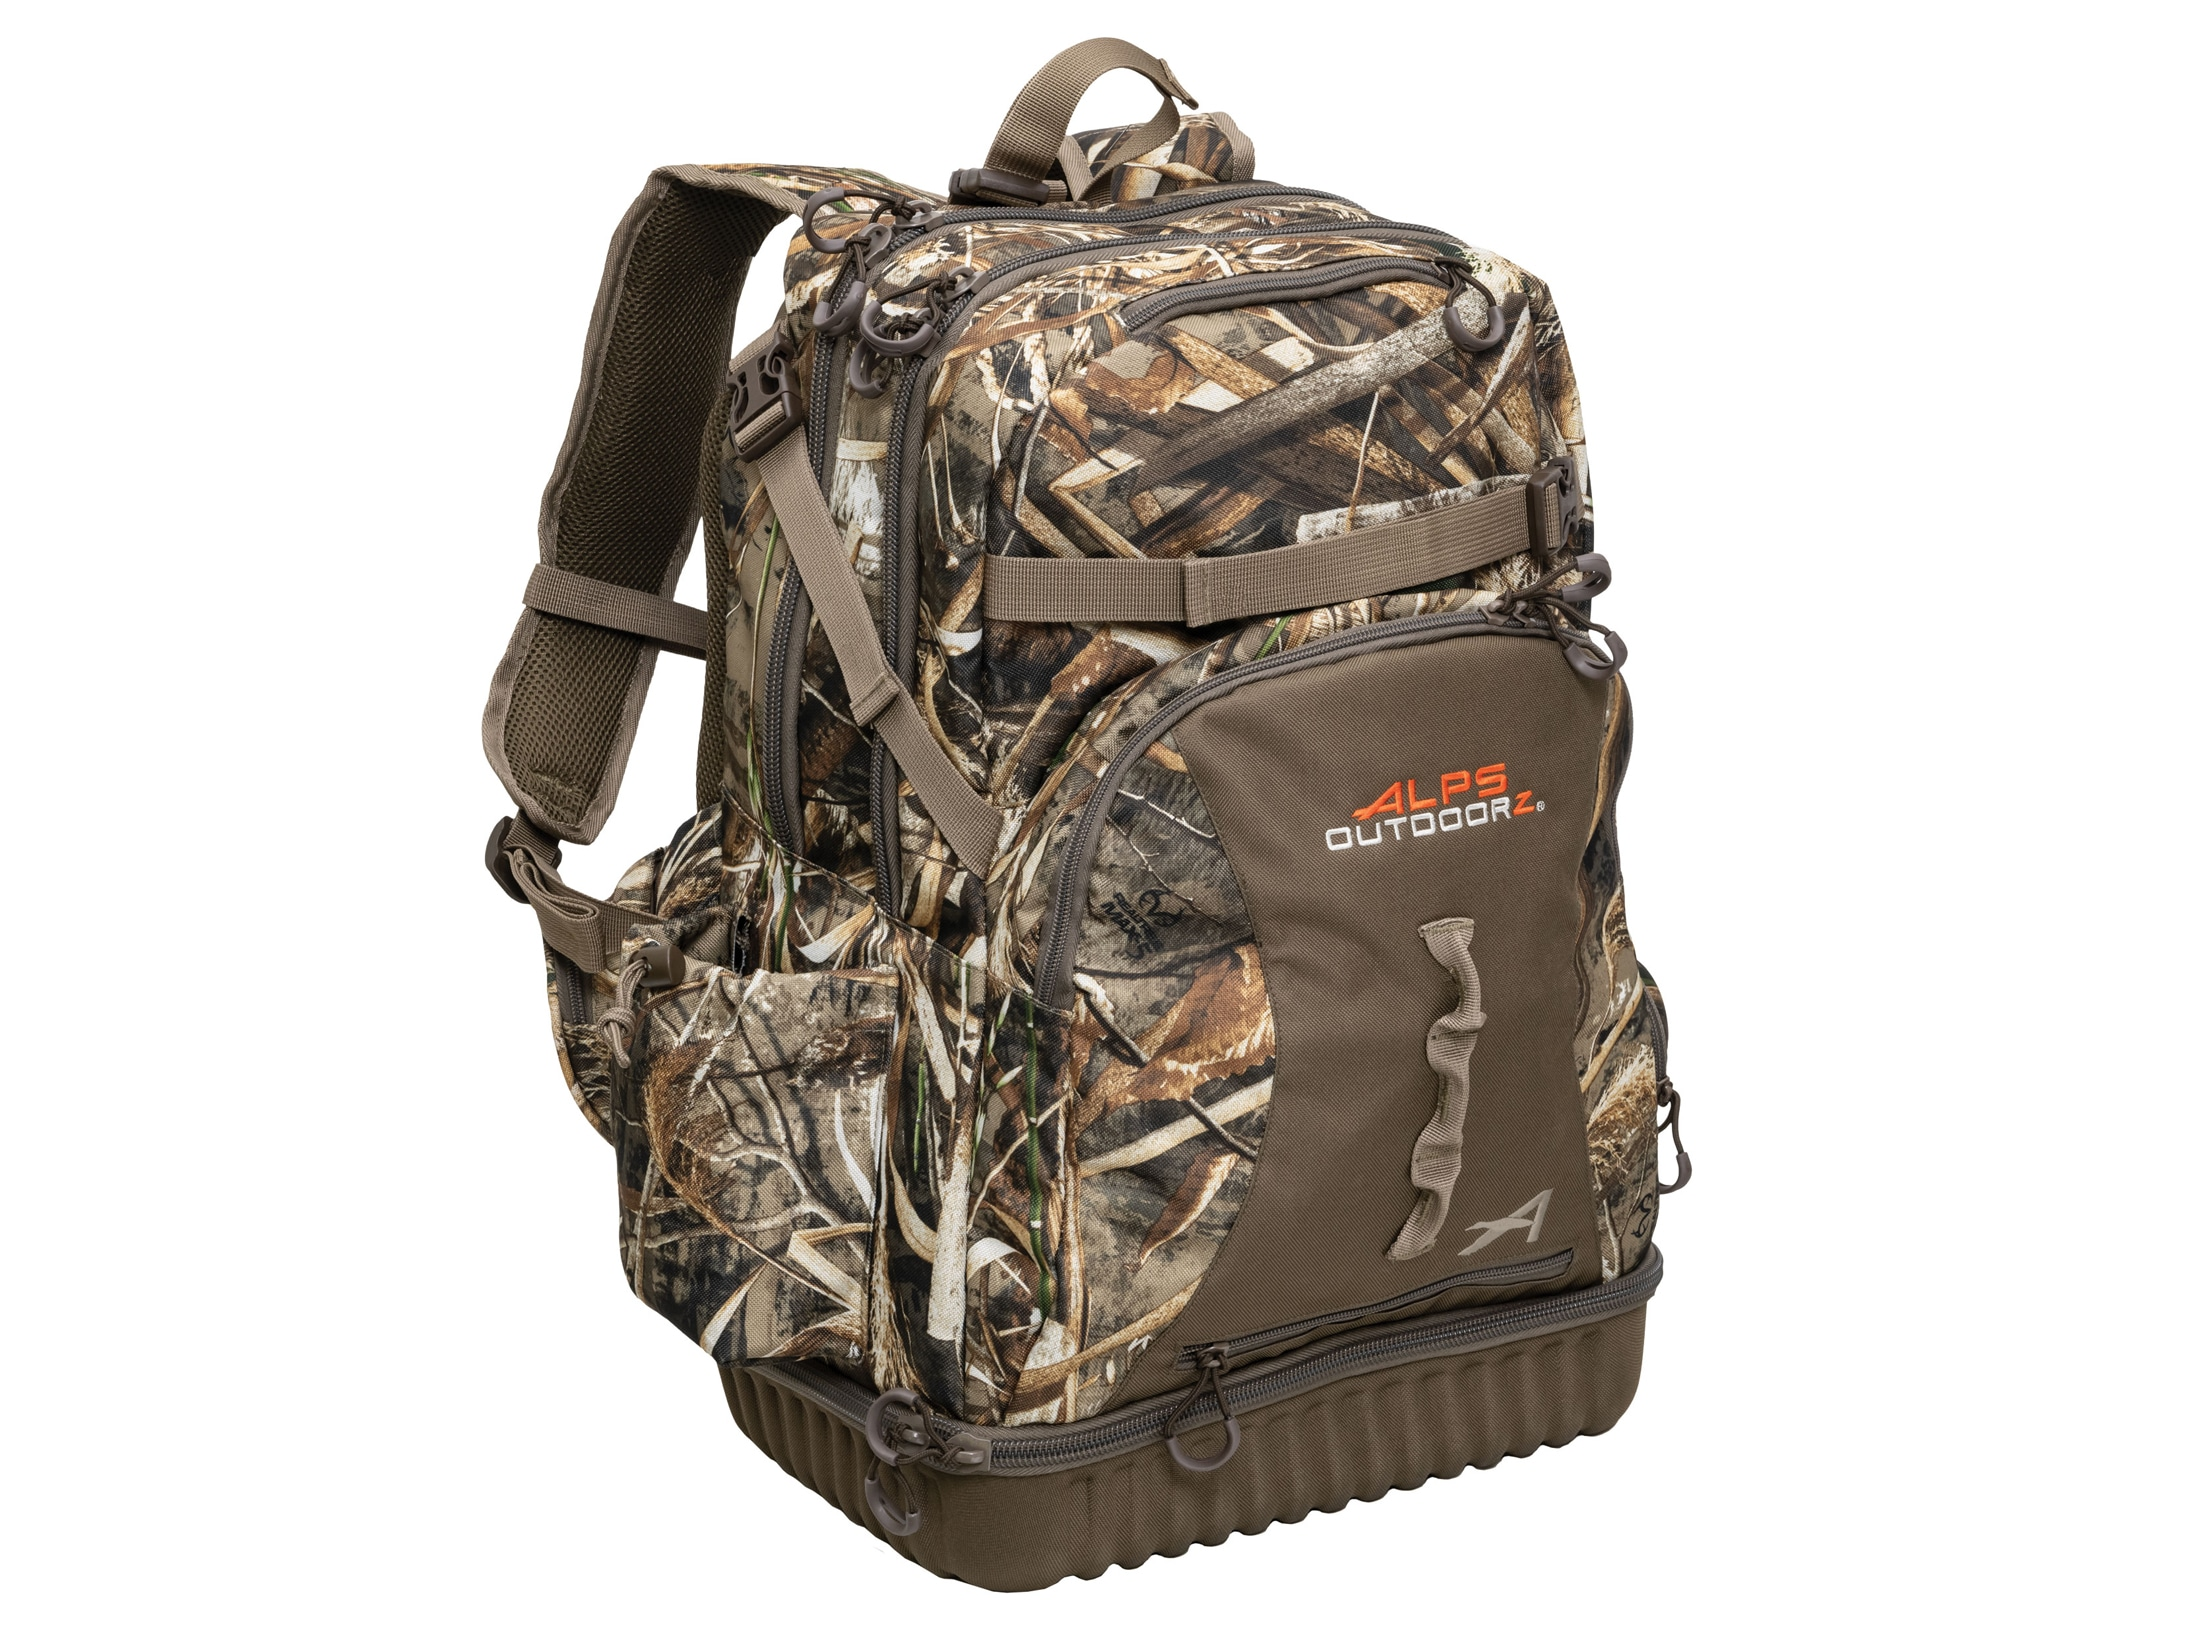 Alps Outdoorz Waterfowl Blind Backpack Realtree Max 5 Camo